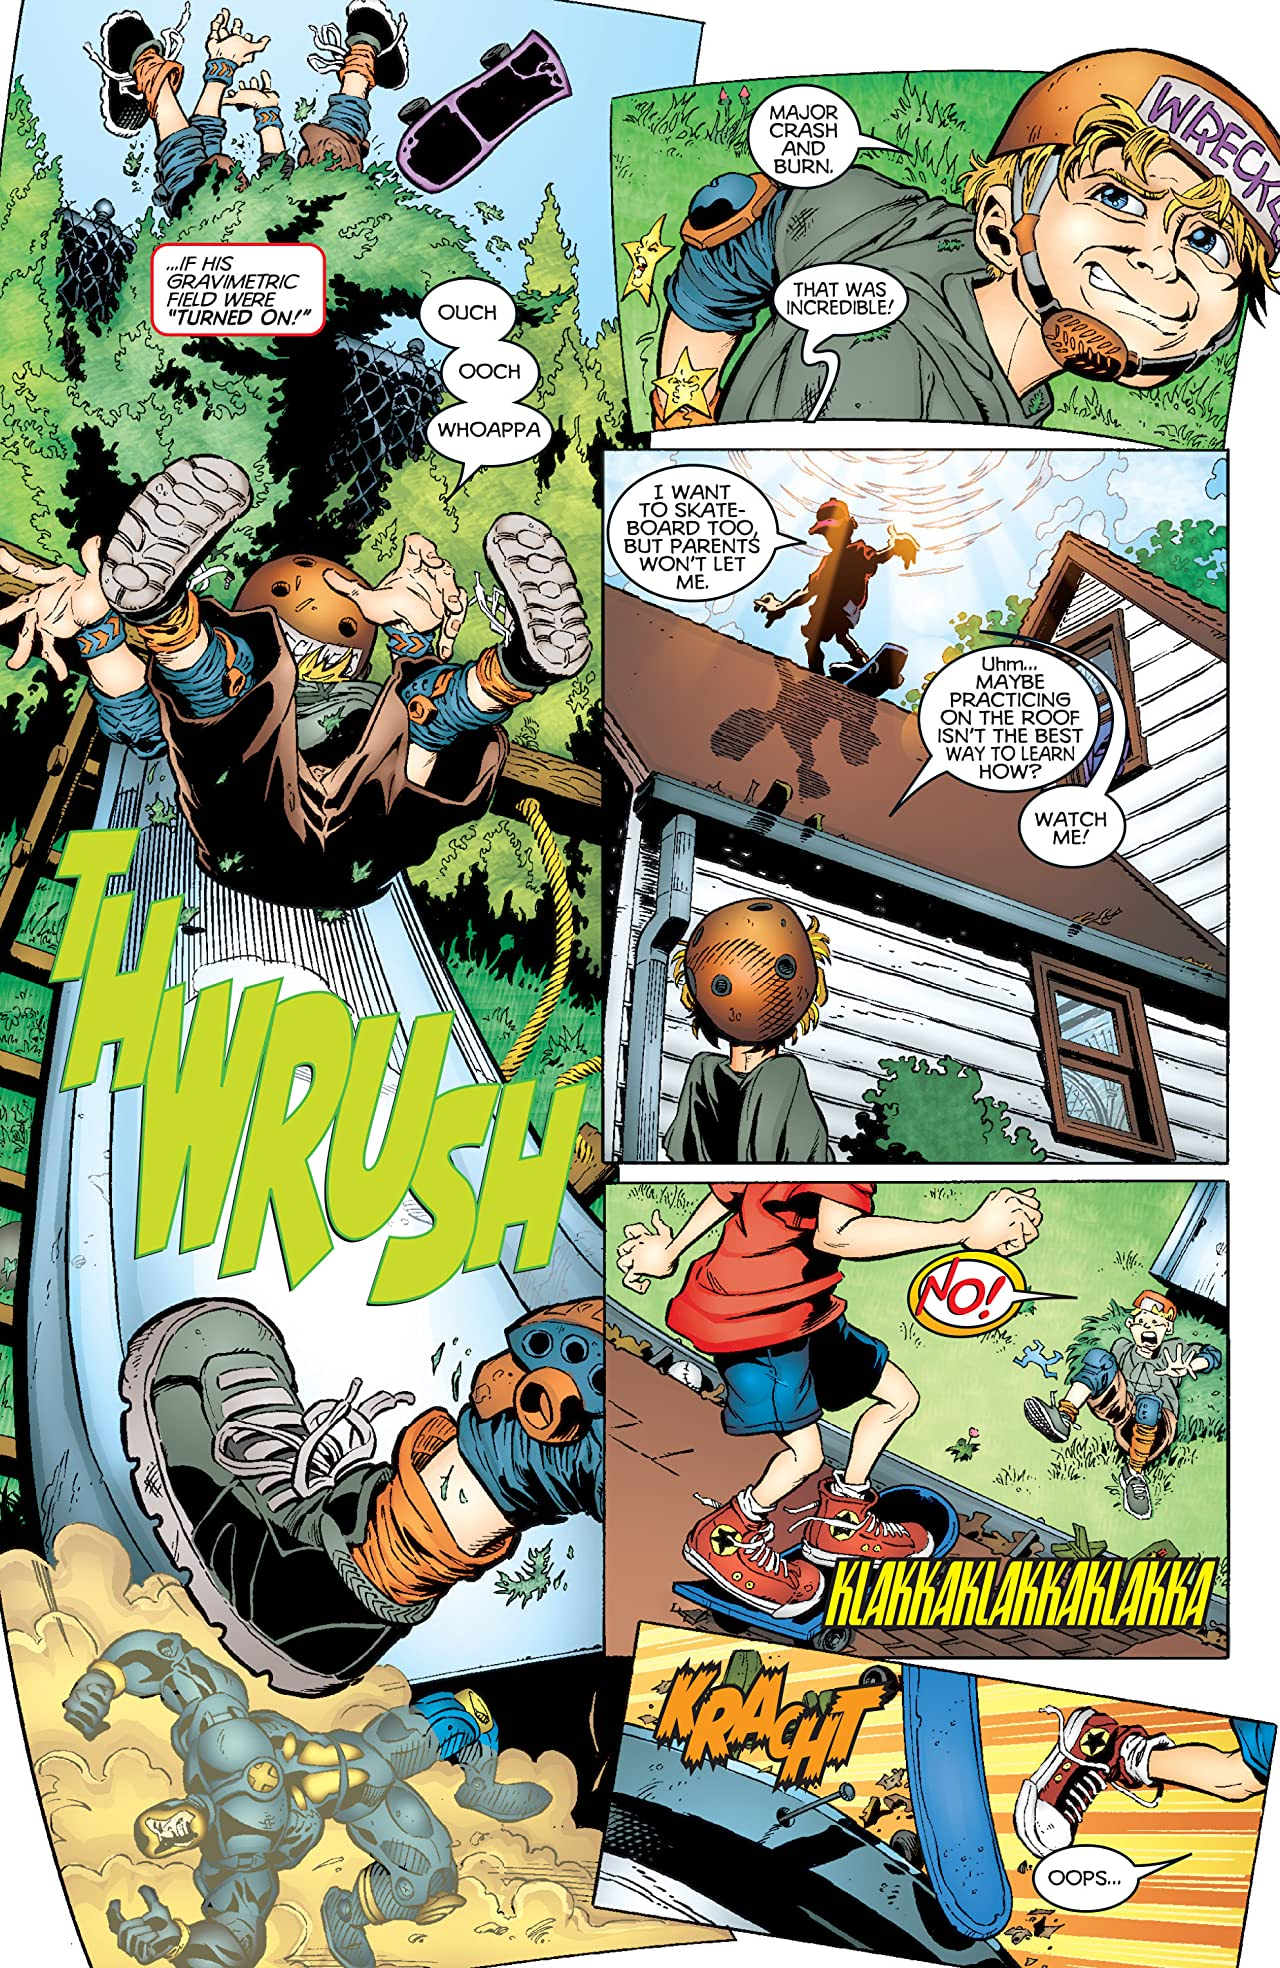 Troublemakers (1997) #10